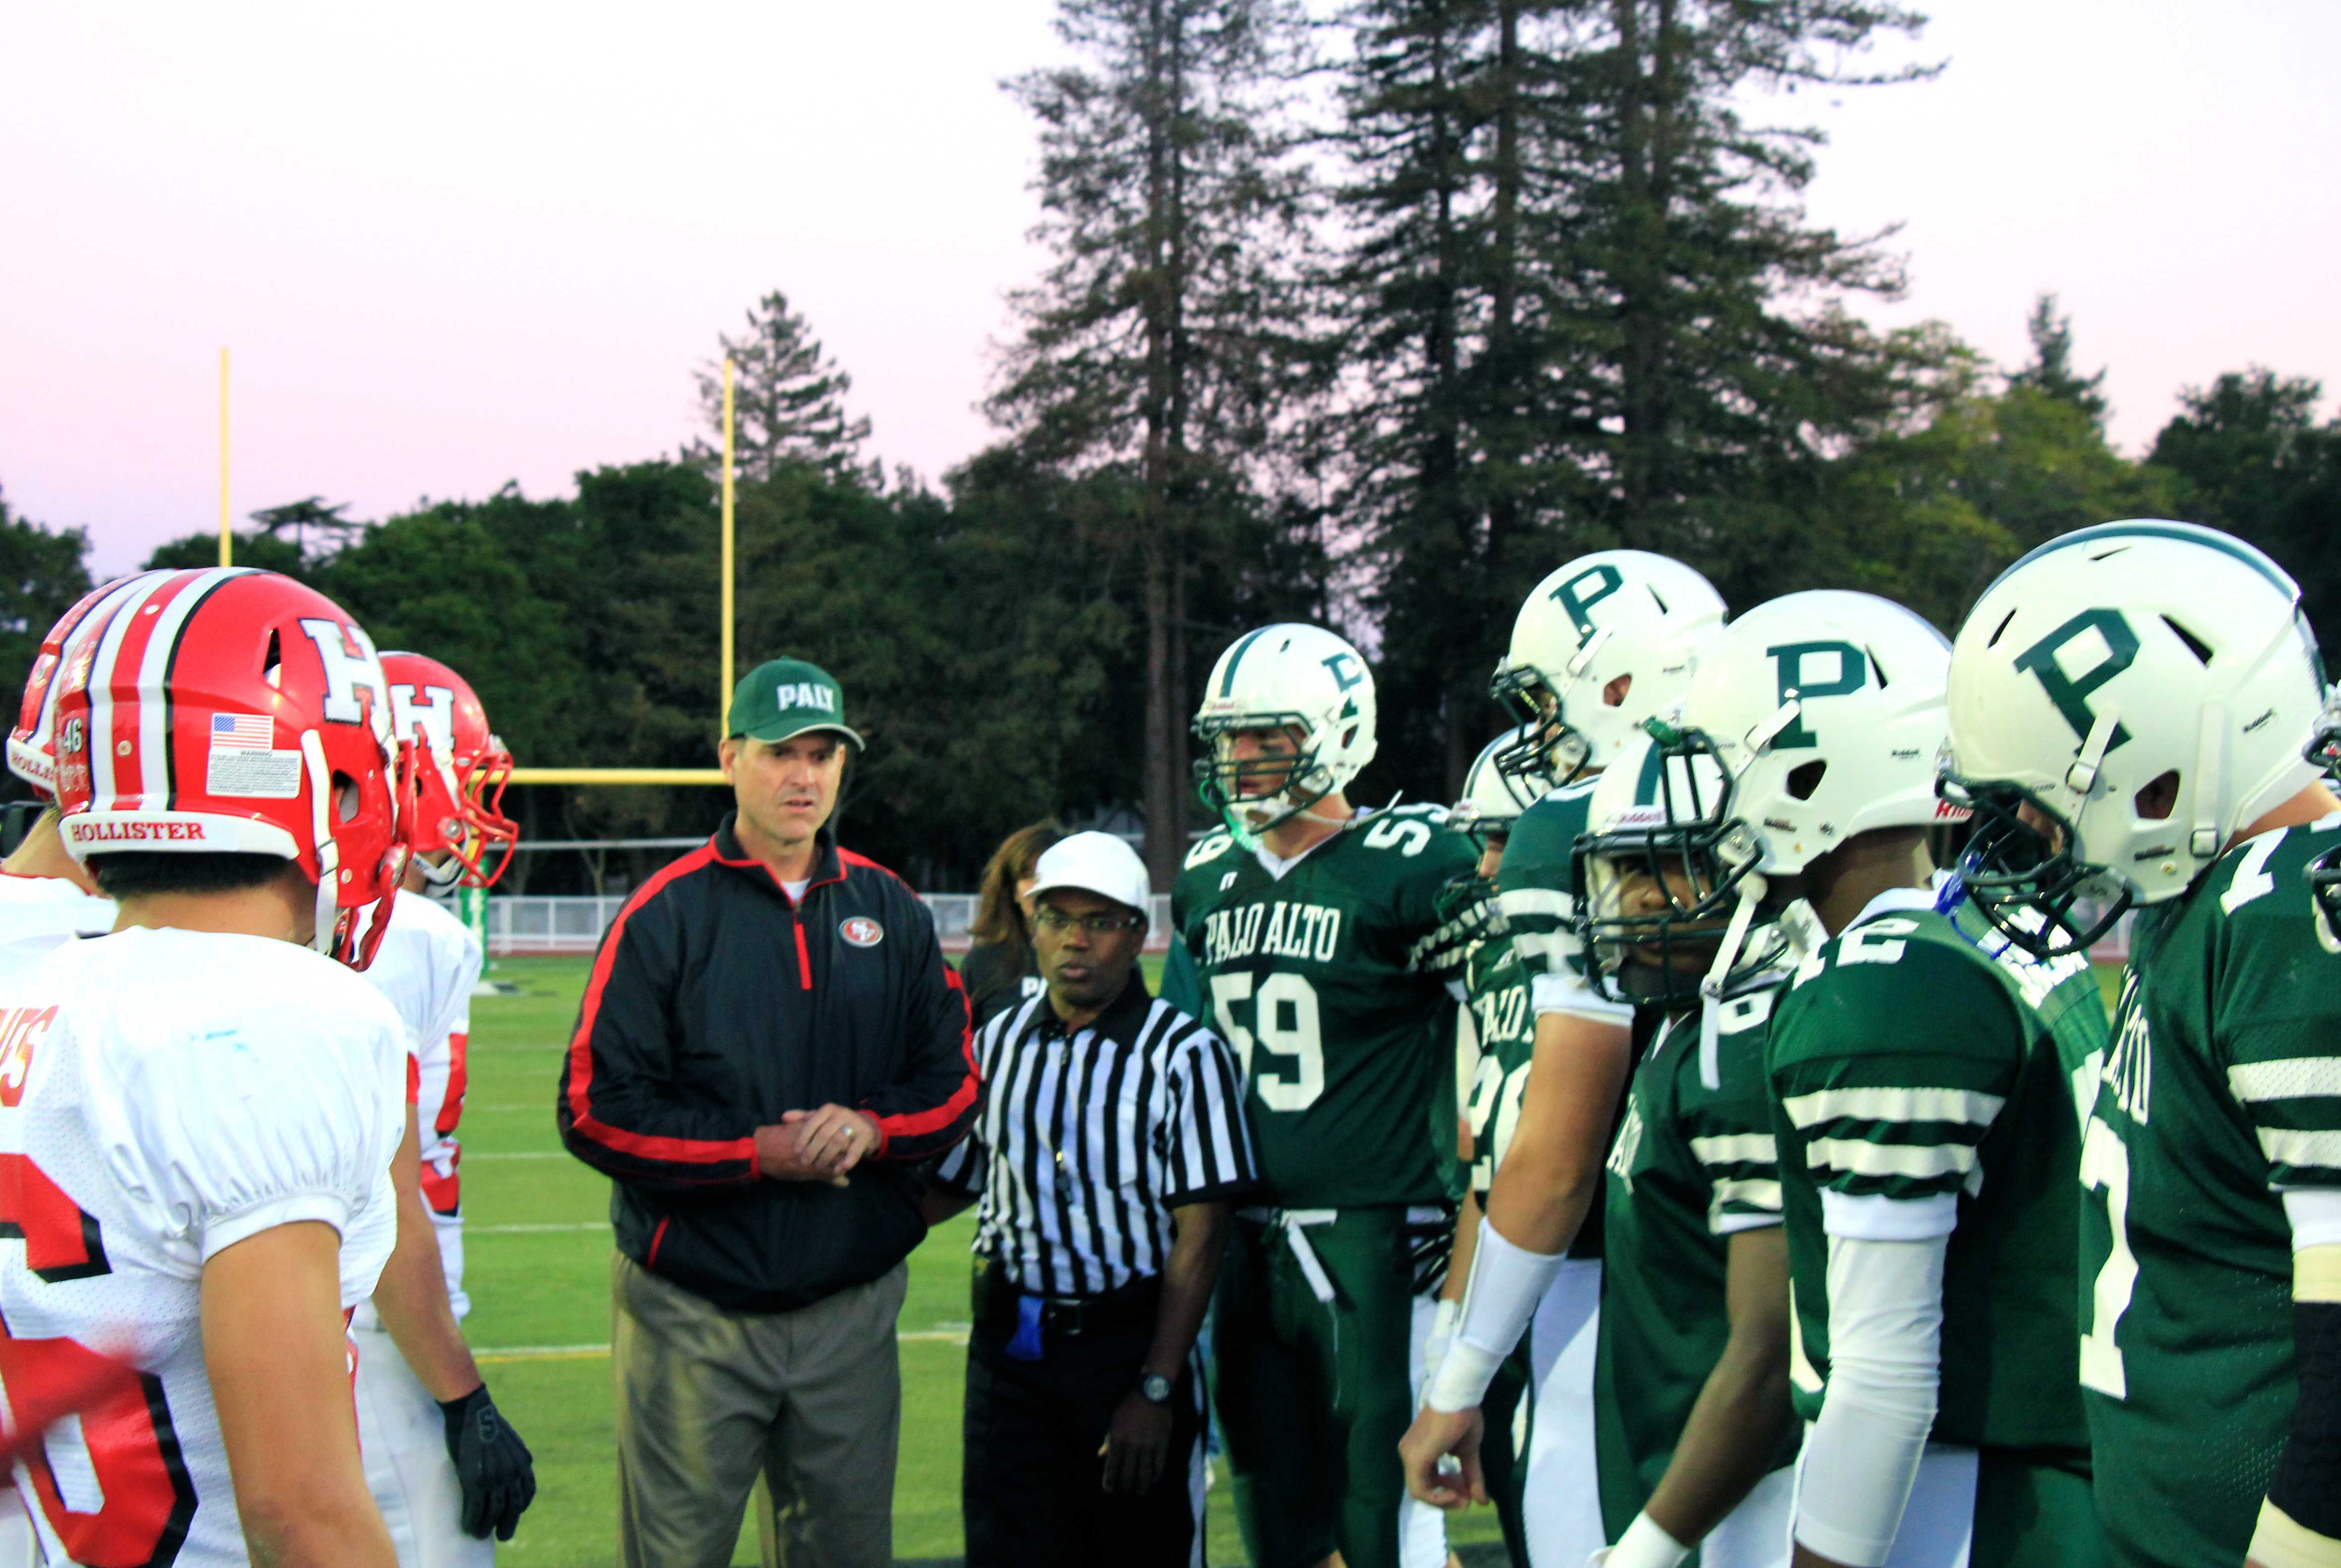 49ers coach Jim Harbaugh flips the coin at Palo Alto High School's football season opener against San Benito High School. Photo by Scott Andrews